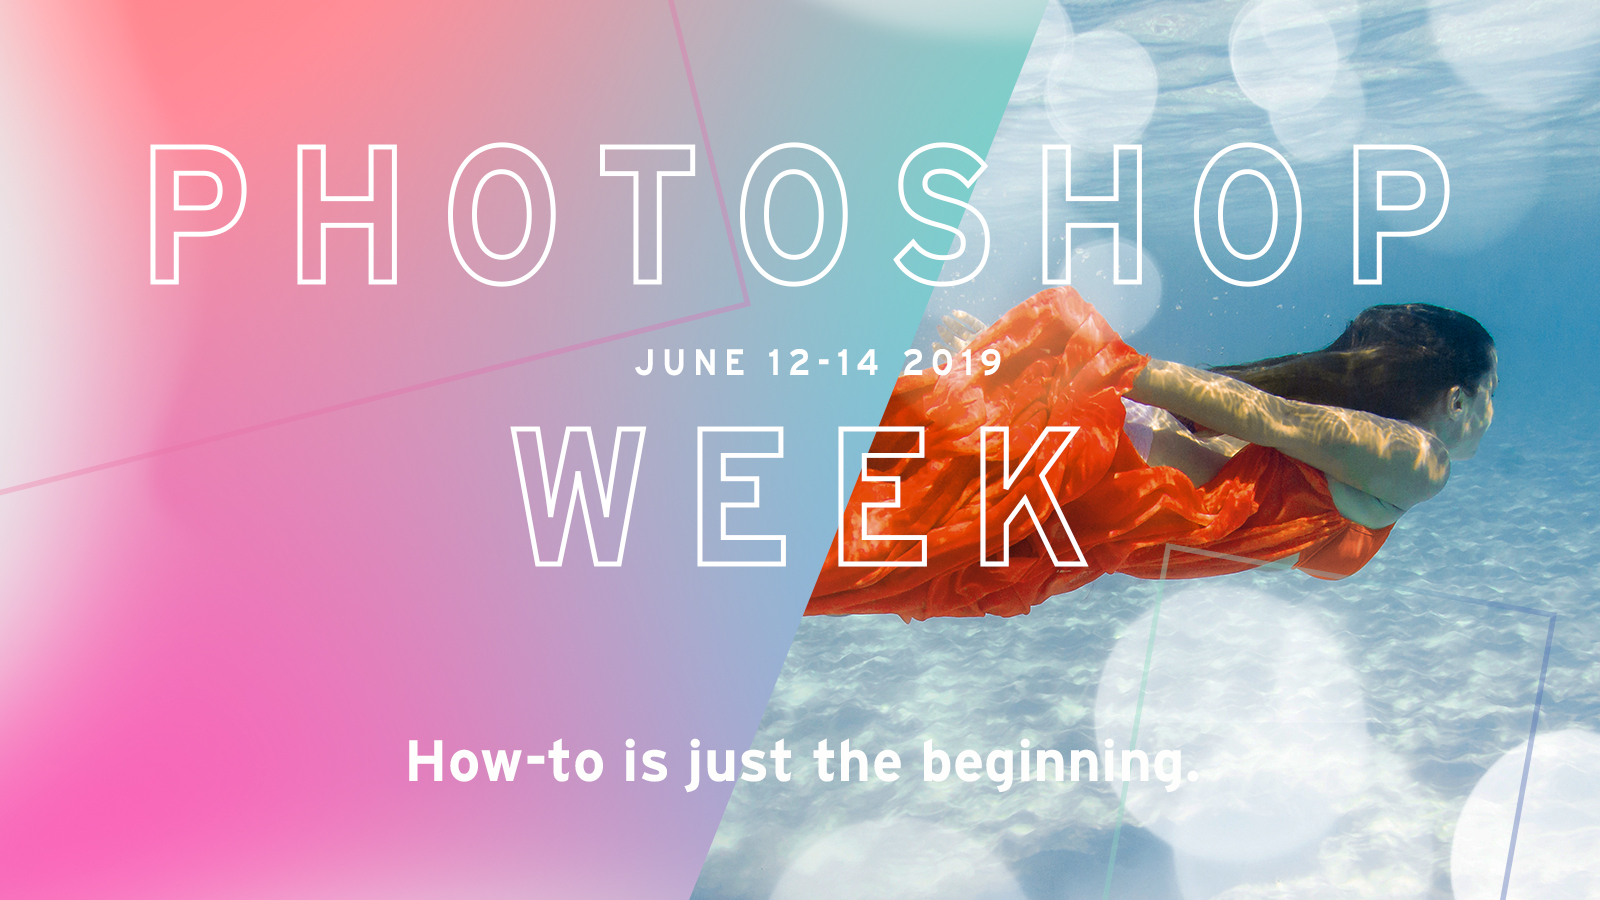 Photoshop Week 2019: The Tools You Actually Need